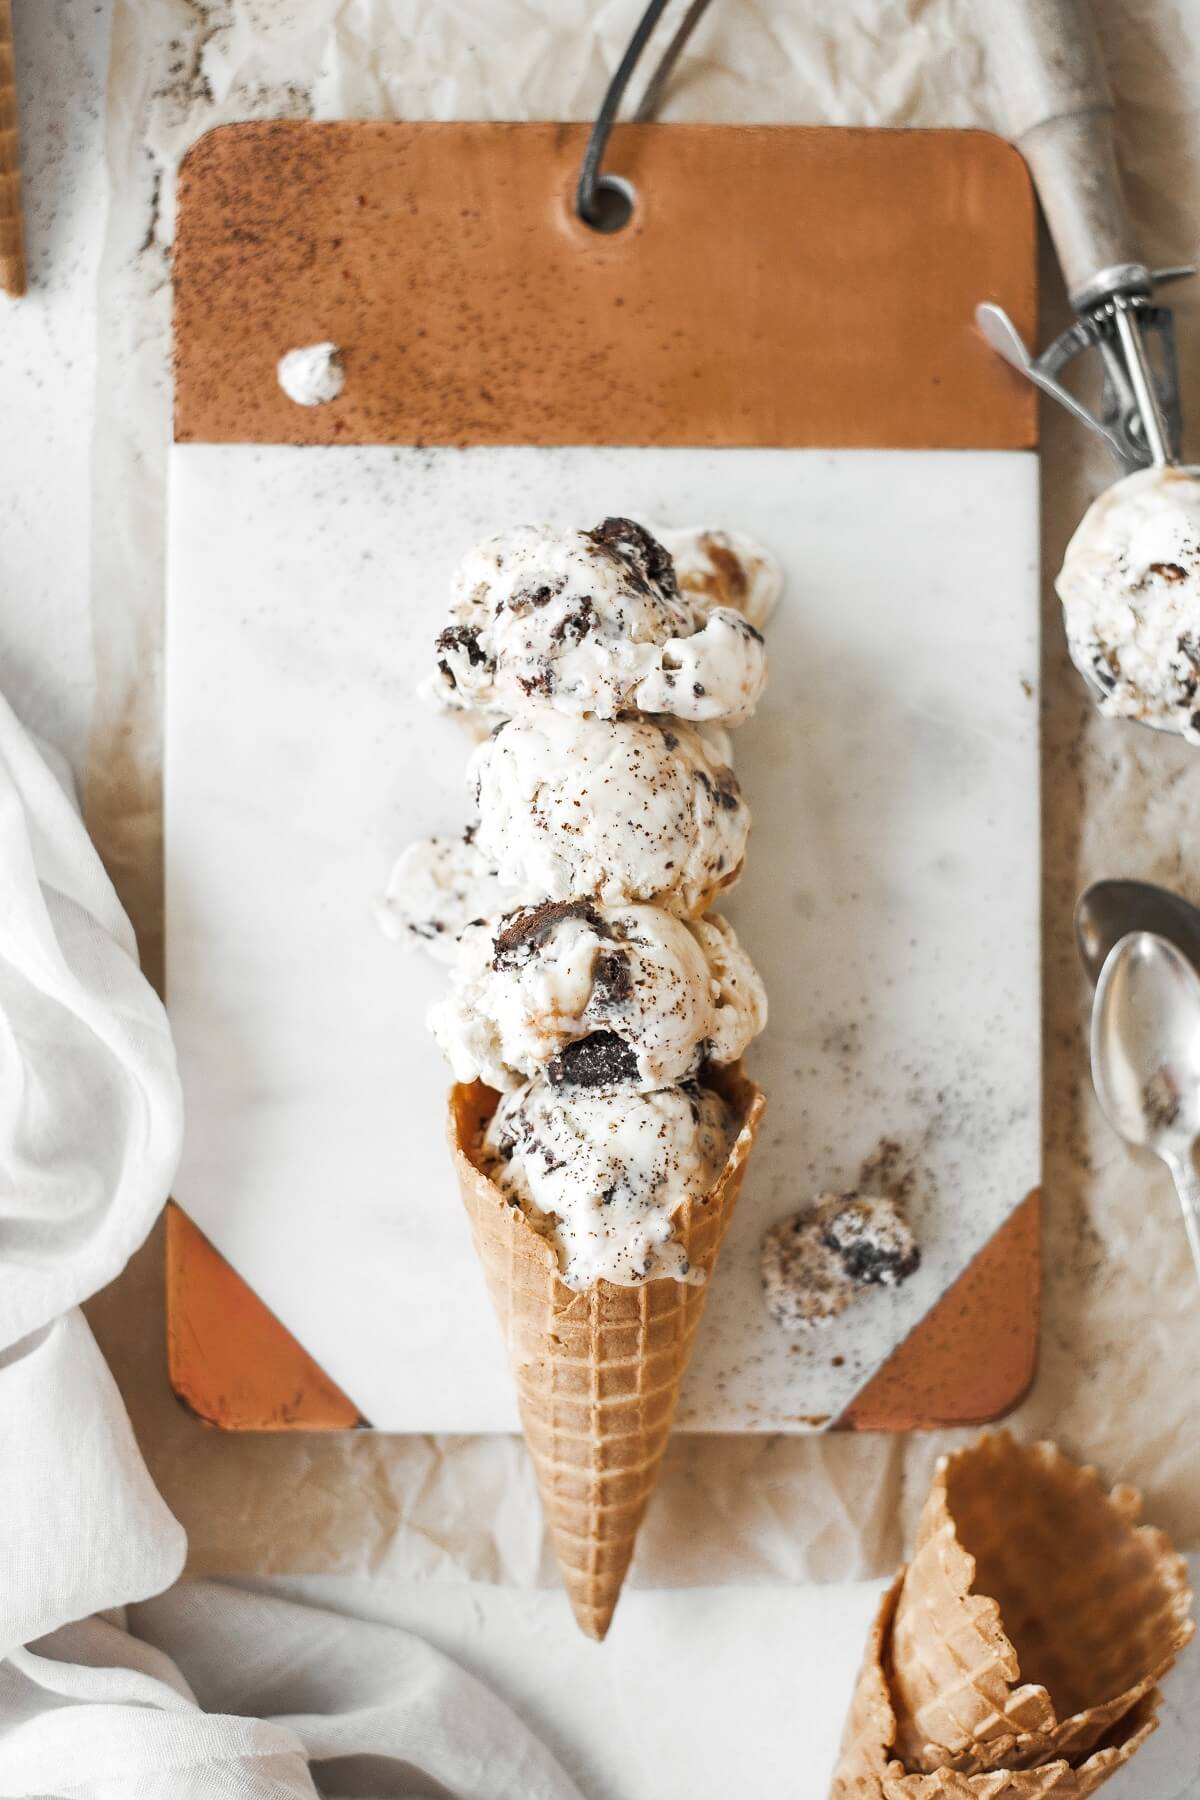 Four scoops of caramel brownie sundae ice cream in a waffle cone.